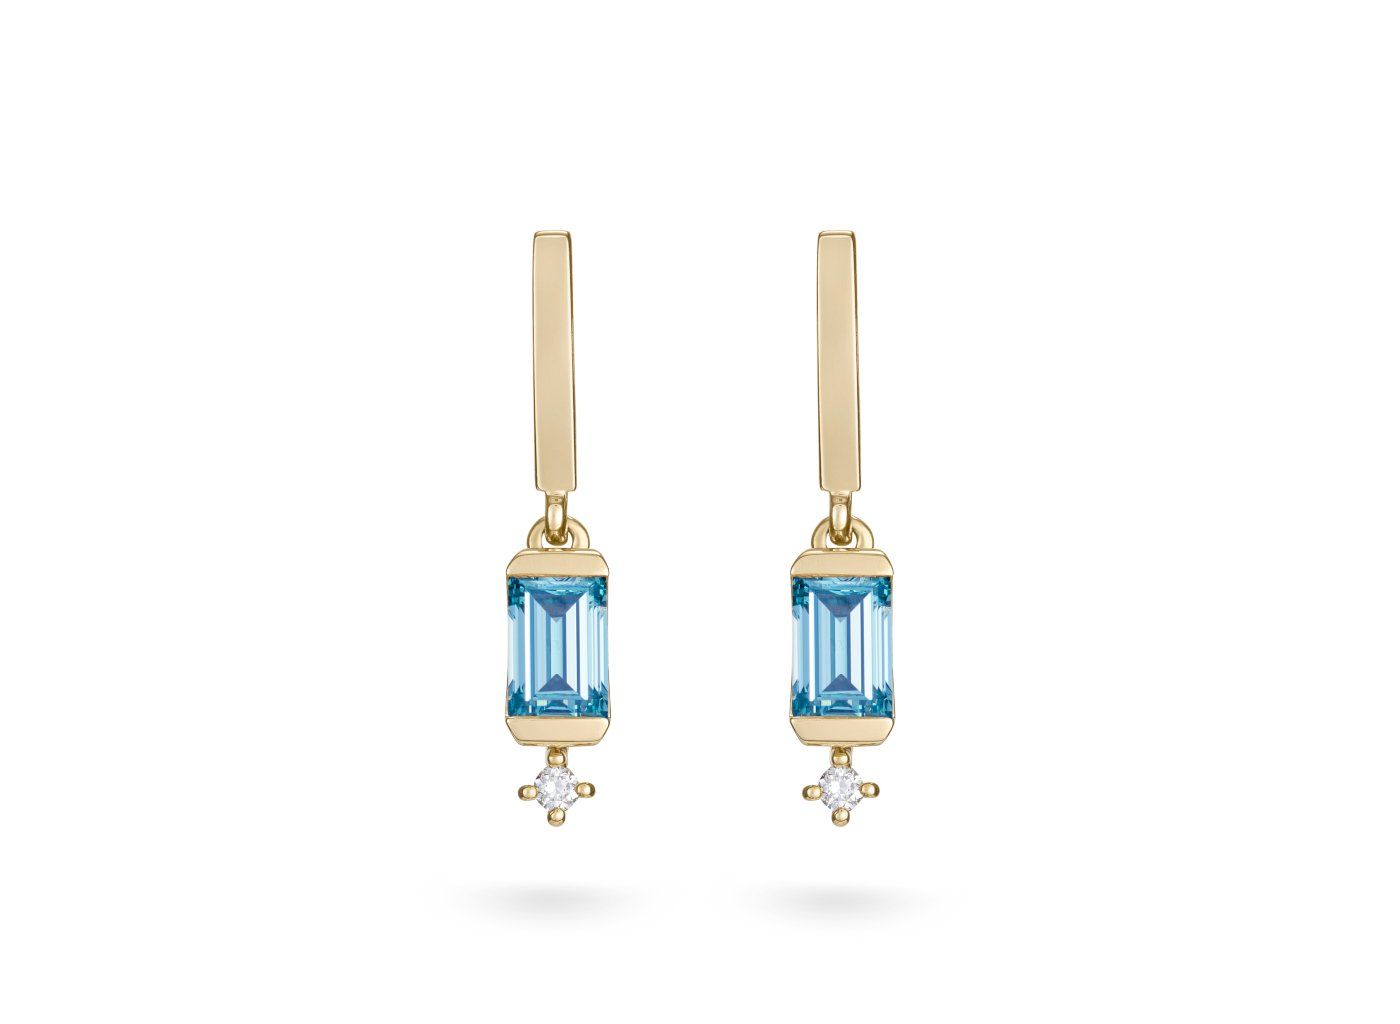 Front view of Linear Drop 4/5 carat earrings with blue and white diamonds